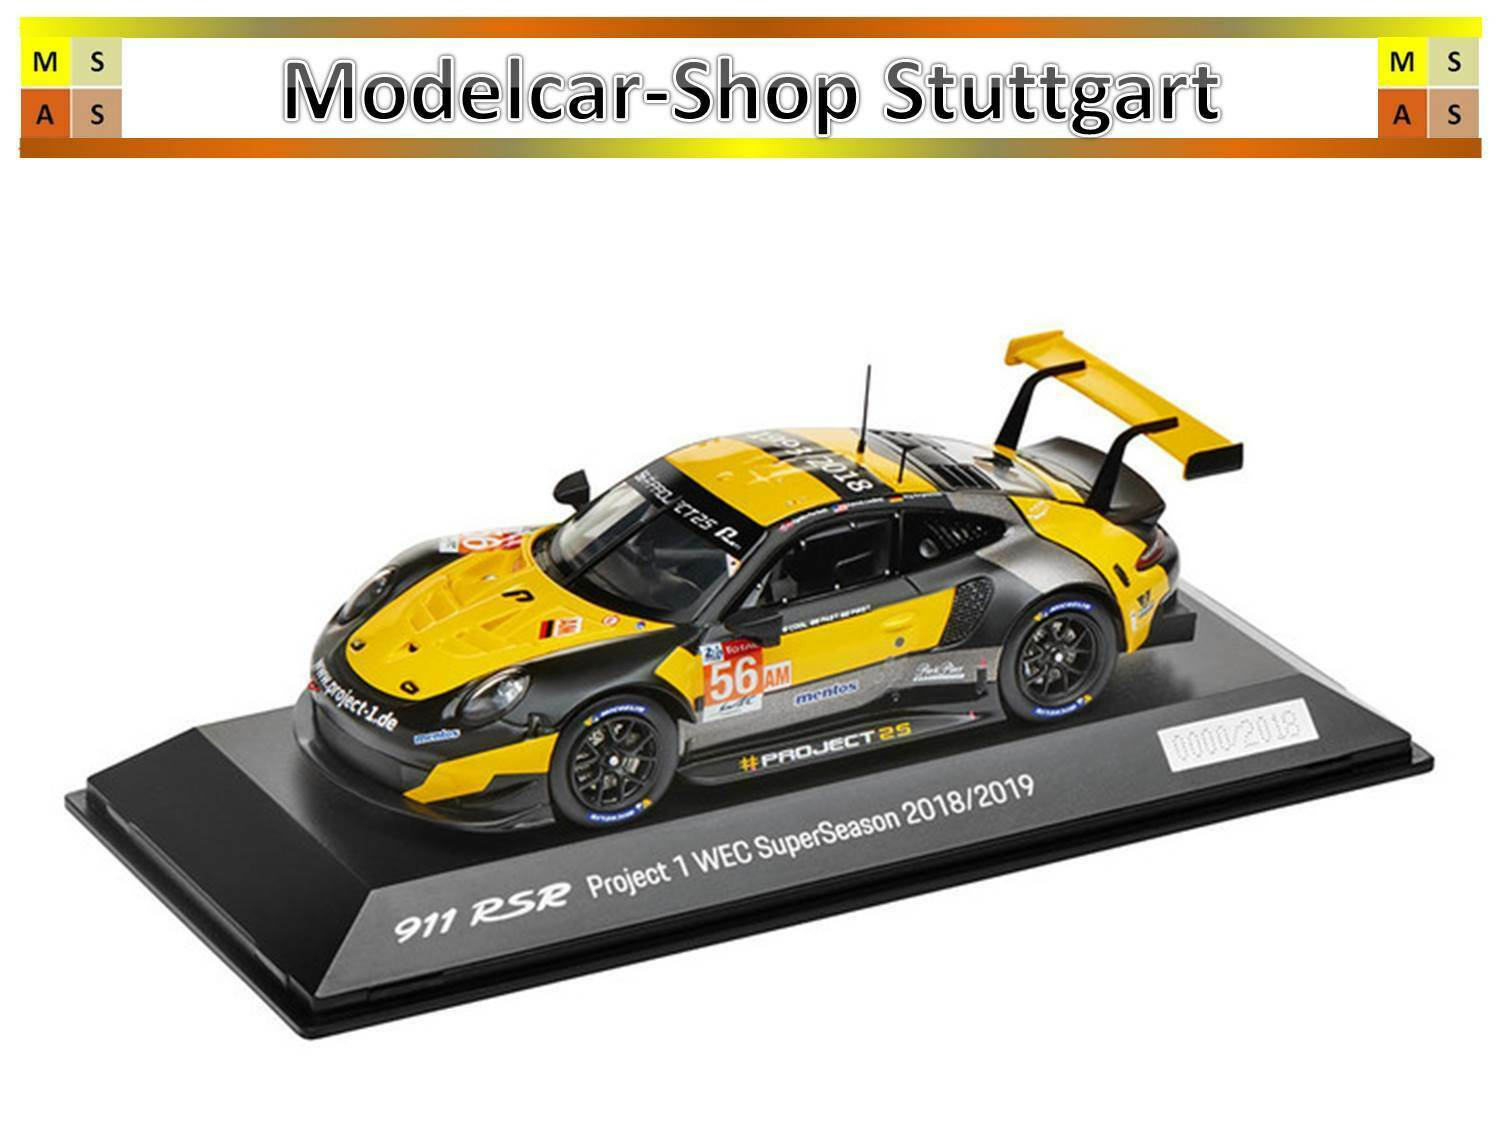 PORSCHE 911 RSR 2018 Project 1 Super Season collecteur 2018 2019 Spark 1 43 wap0209210k